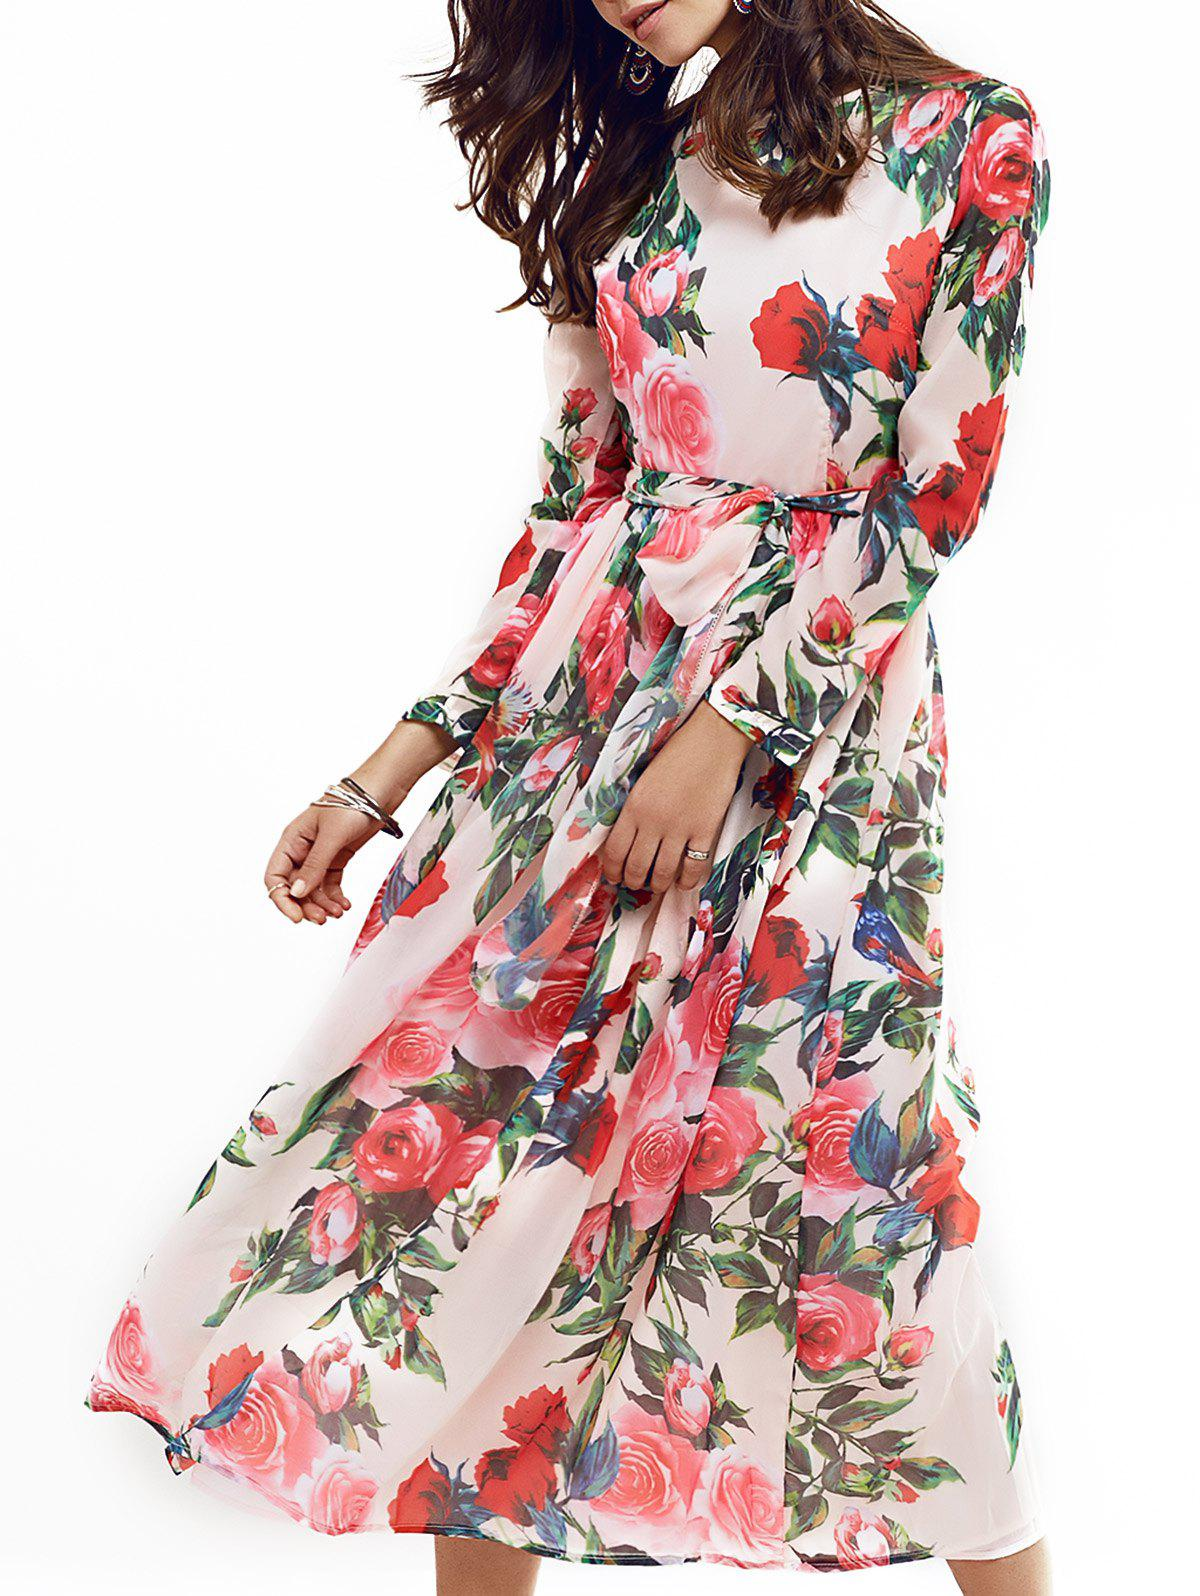 Vintage Long Sleeve Rose Print Full Dress - COLORMIX M